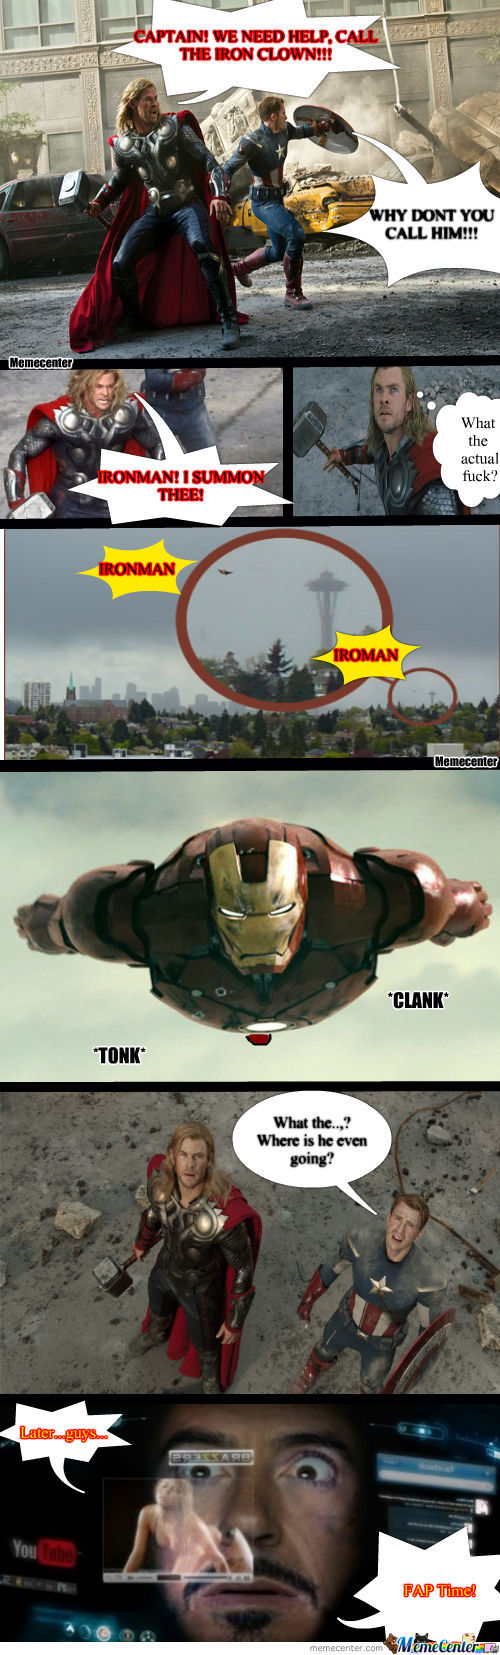 Meanwhile In The Avengers...